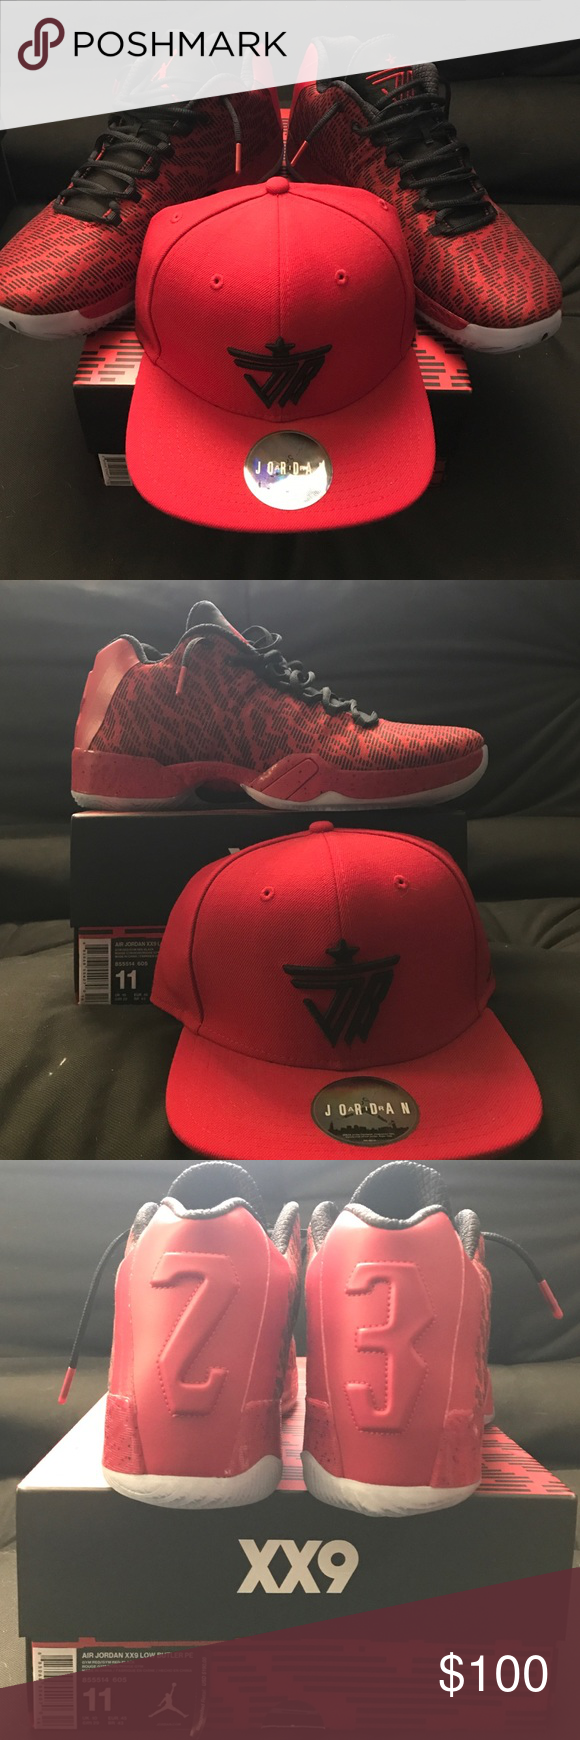 low priced 2c849 e0b9e Jordan XX9 Low Jimmy Butler PE size 11 Never Worn For Sale ...